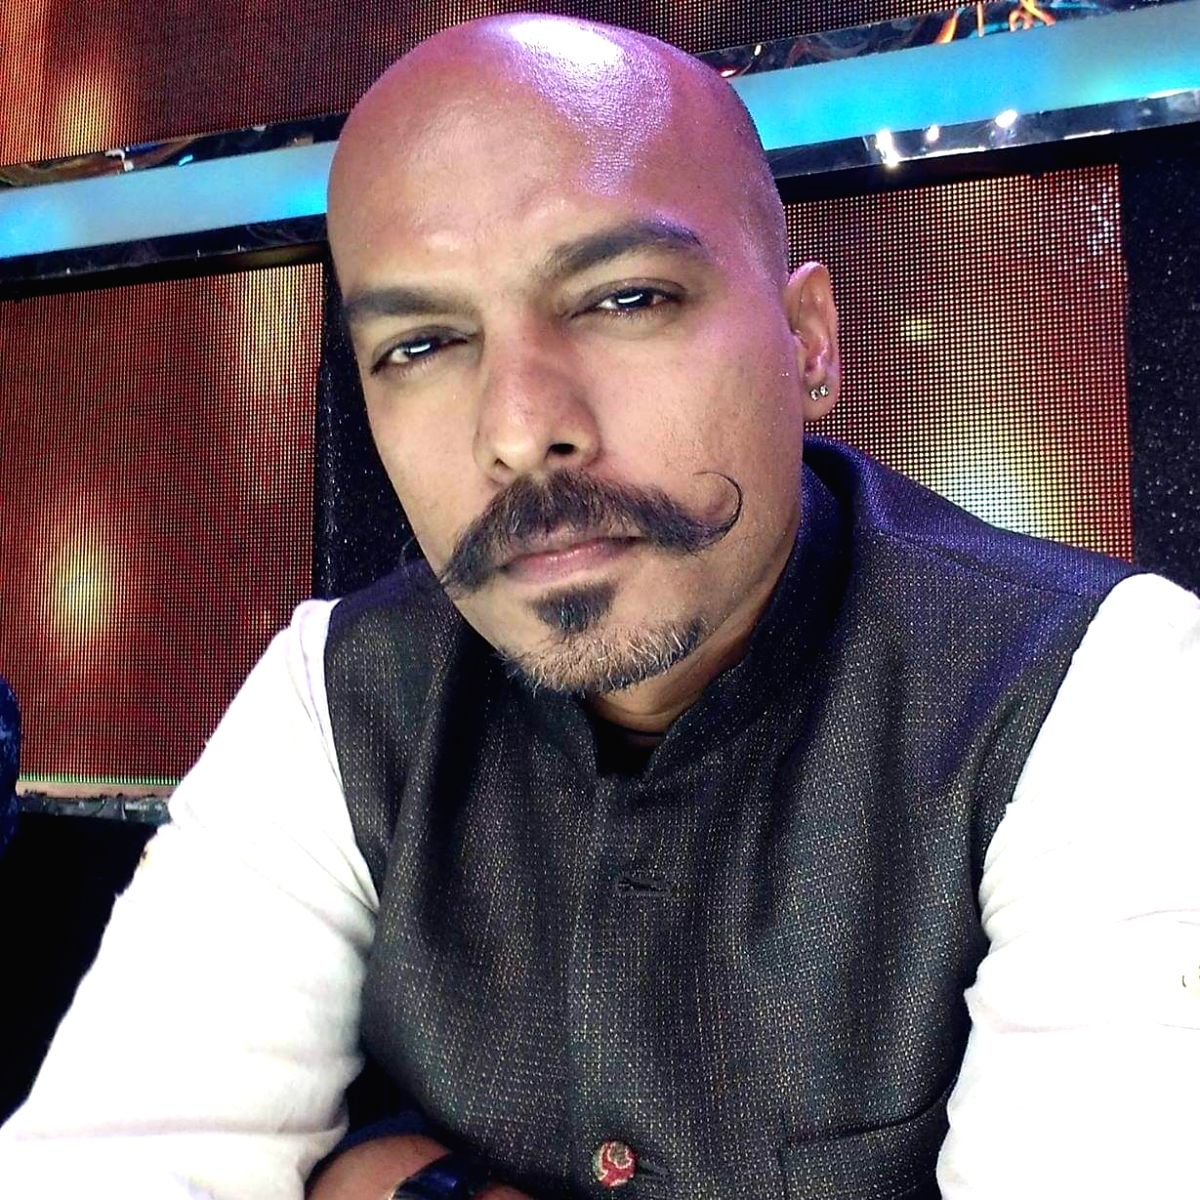 New Delhi, Sep 19 (IANS) Lyricist Prashant Ingole, who wrote the romantic song Pal in the Rhea Chakraborty-starrer Jalebi, says many people have an illusion that you get inspiration from drugs.